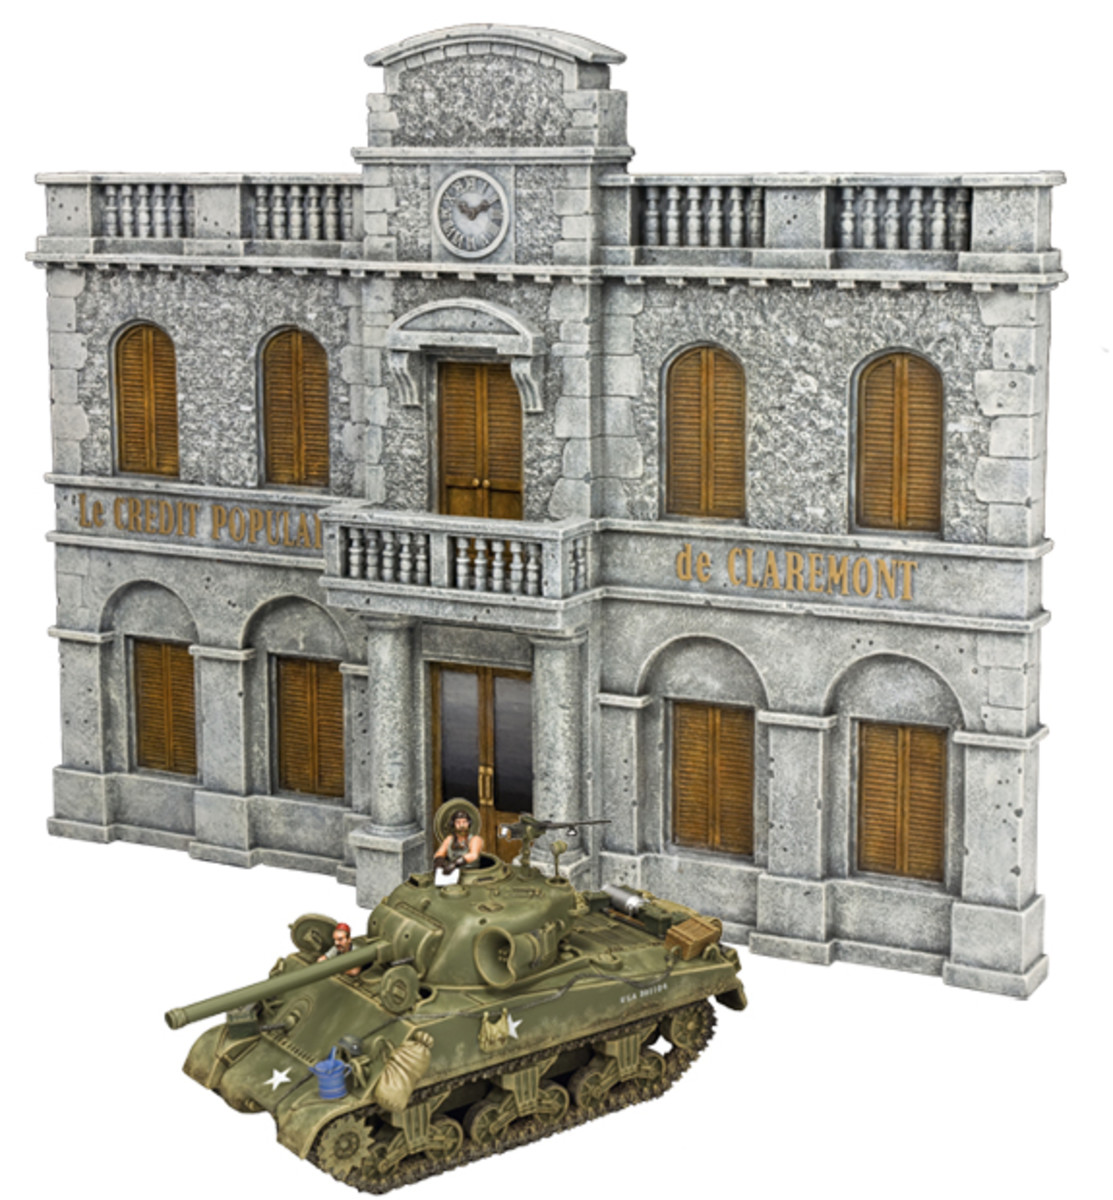 """The Heroes needed a bank to rob, so King & Country introduced the """"Bank of Heroes."""" The façade measures an impressive L 14.5"""" x D 0.8"""" x H 12"""", perfectly in scale with the tanks and figures. """"Oddball's Tank"""" sits in front."""